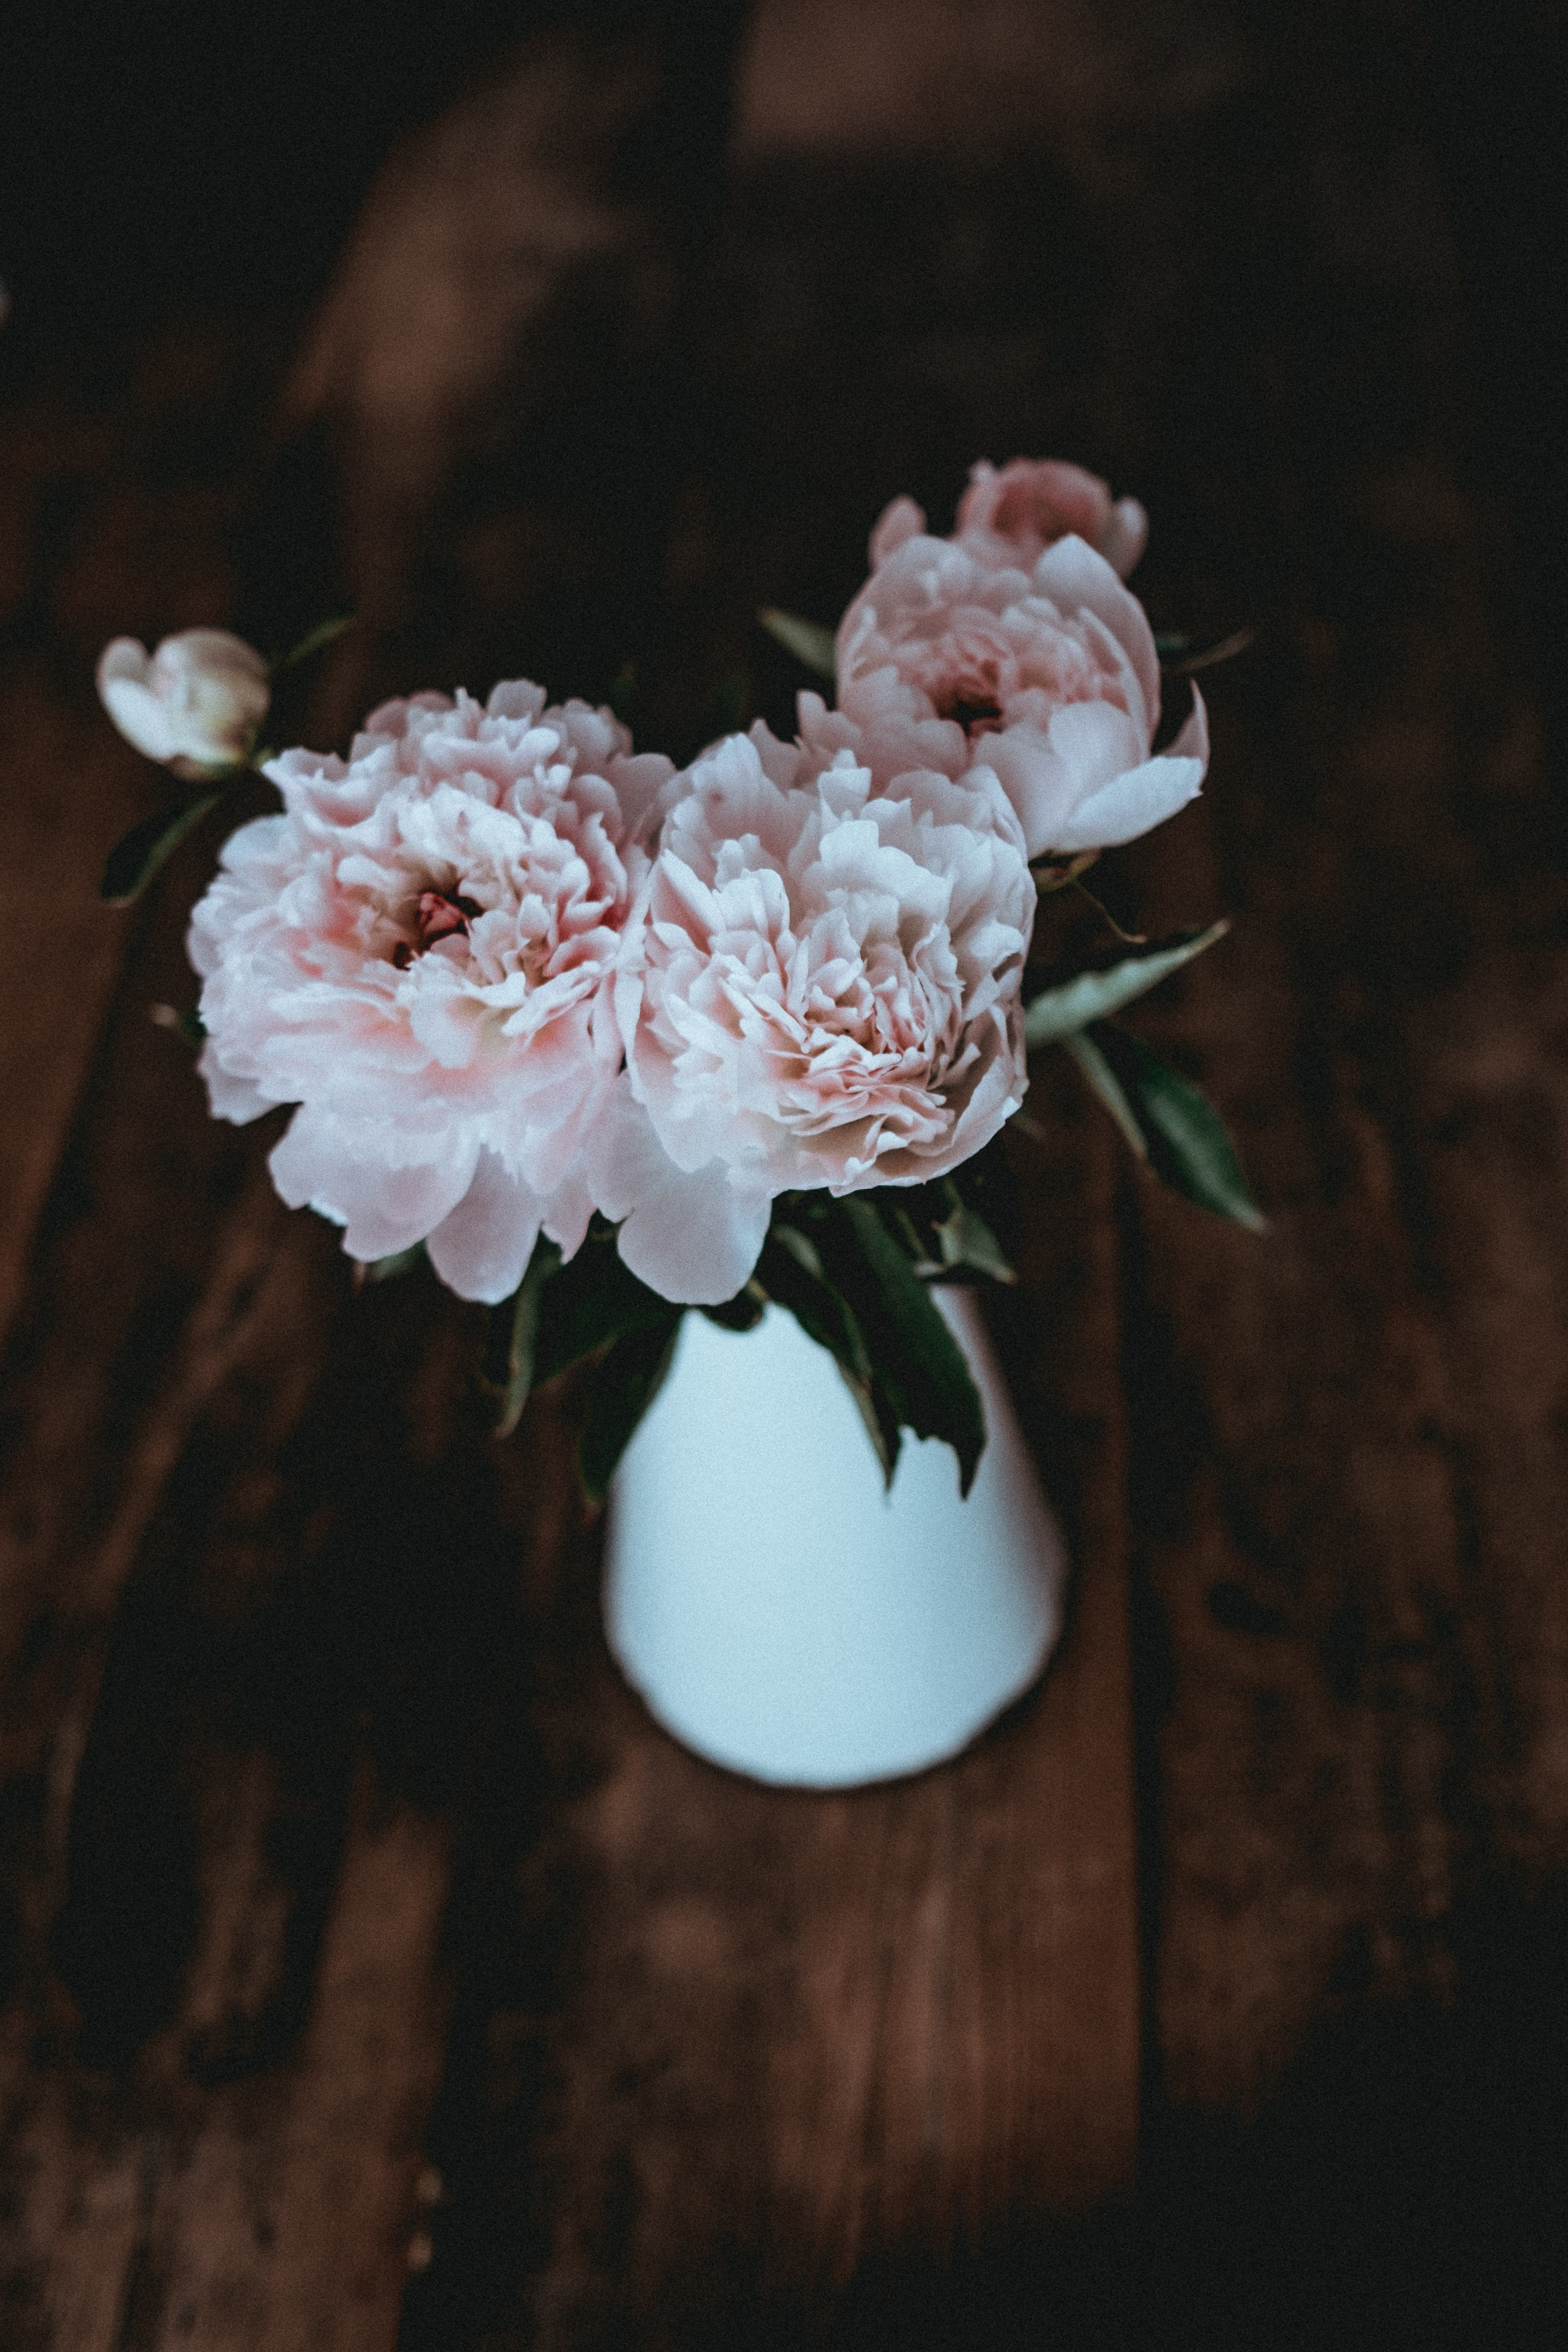 A white vase with pastel pink peonies